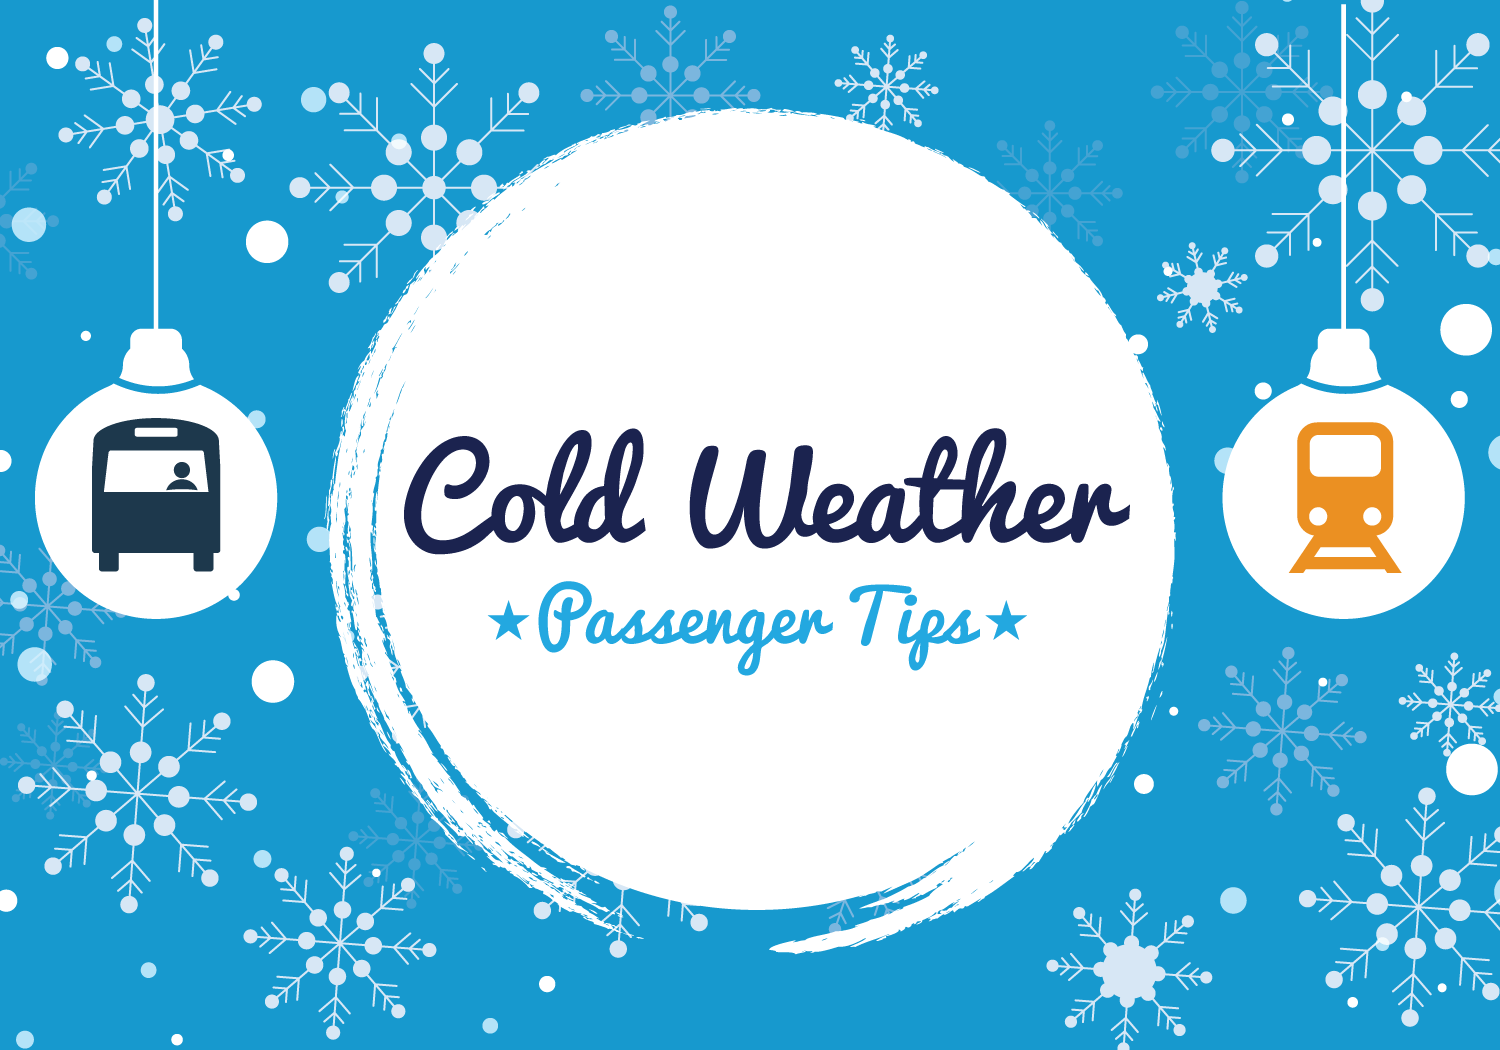 """Blue snowy graphic background. Text in middle reads """"Cold Weather passenger Tips"""""""